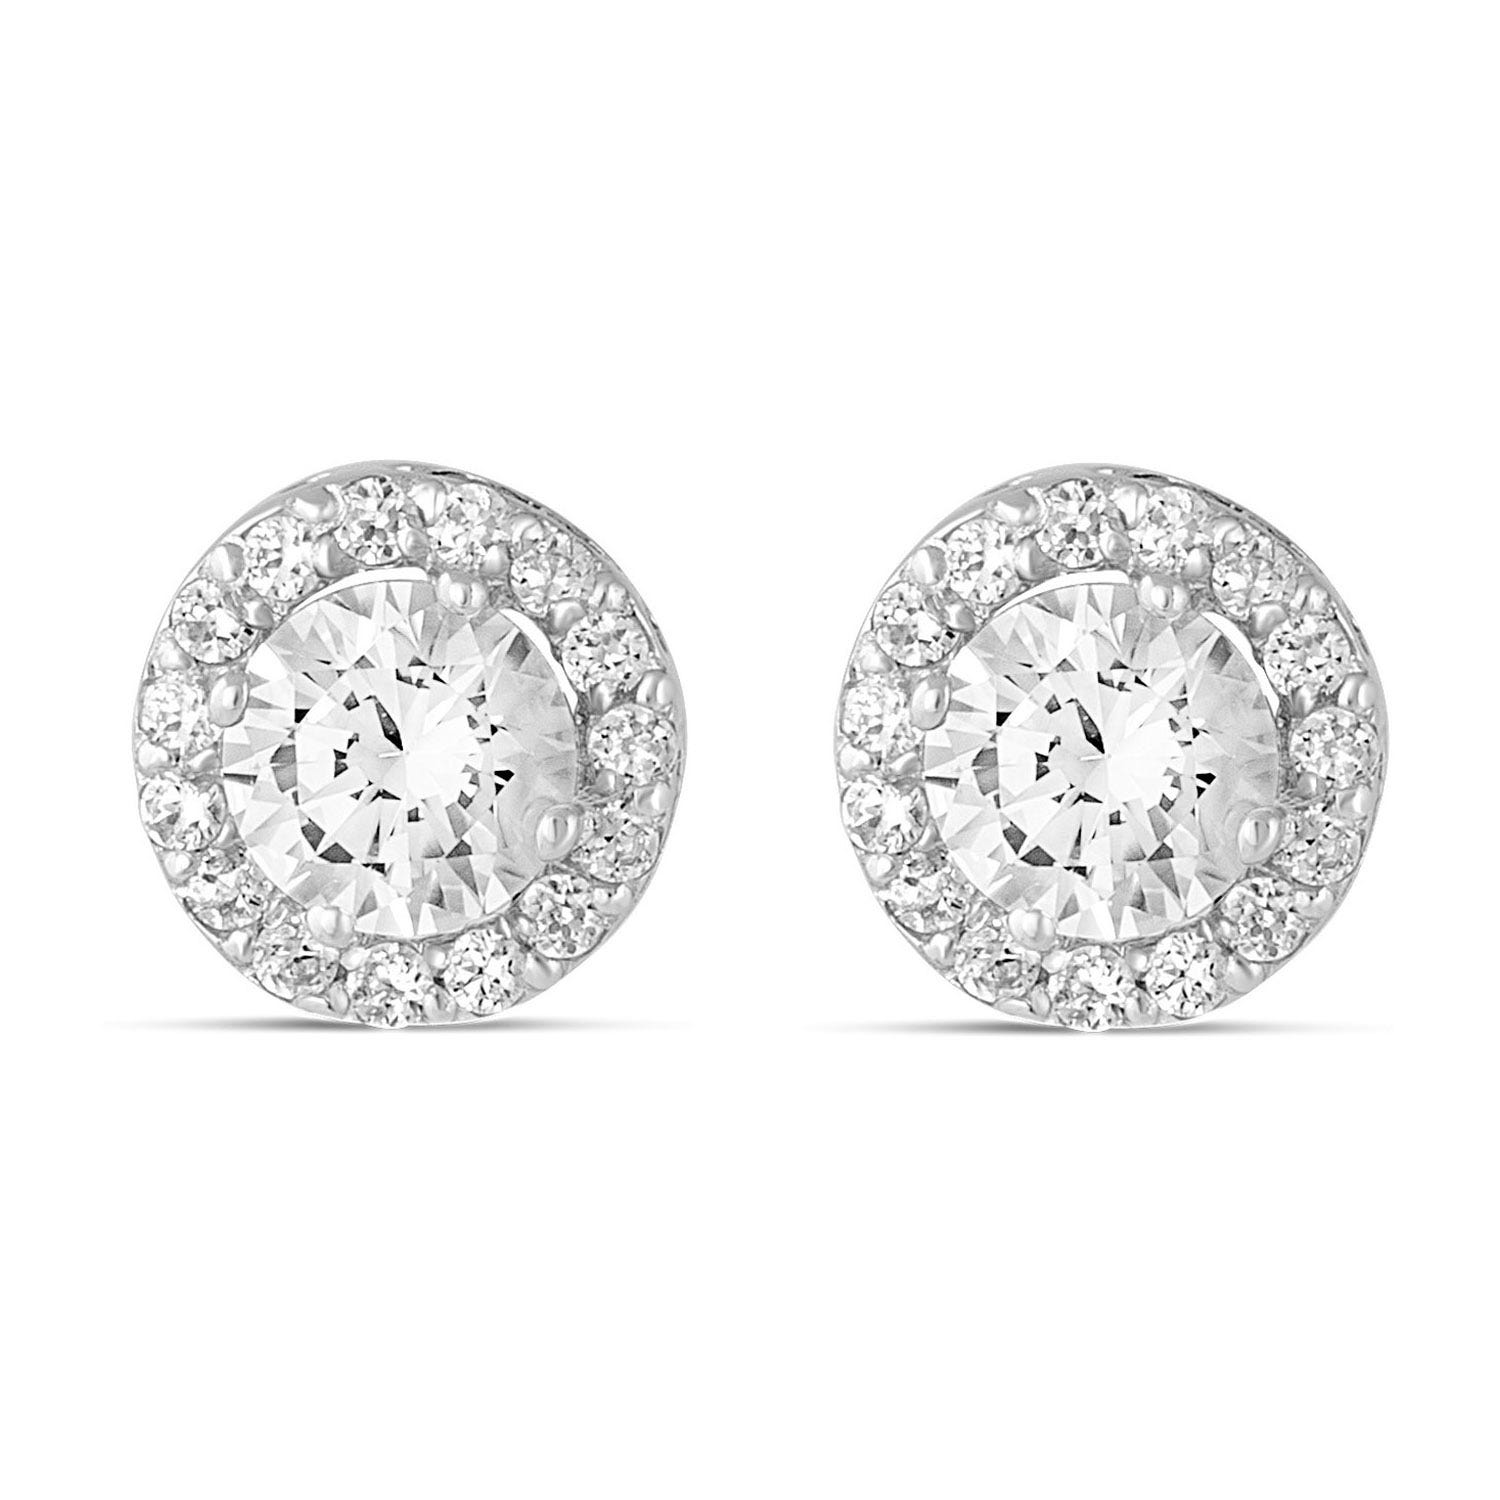 9ct white gold cubic zirconia halo stud earrings